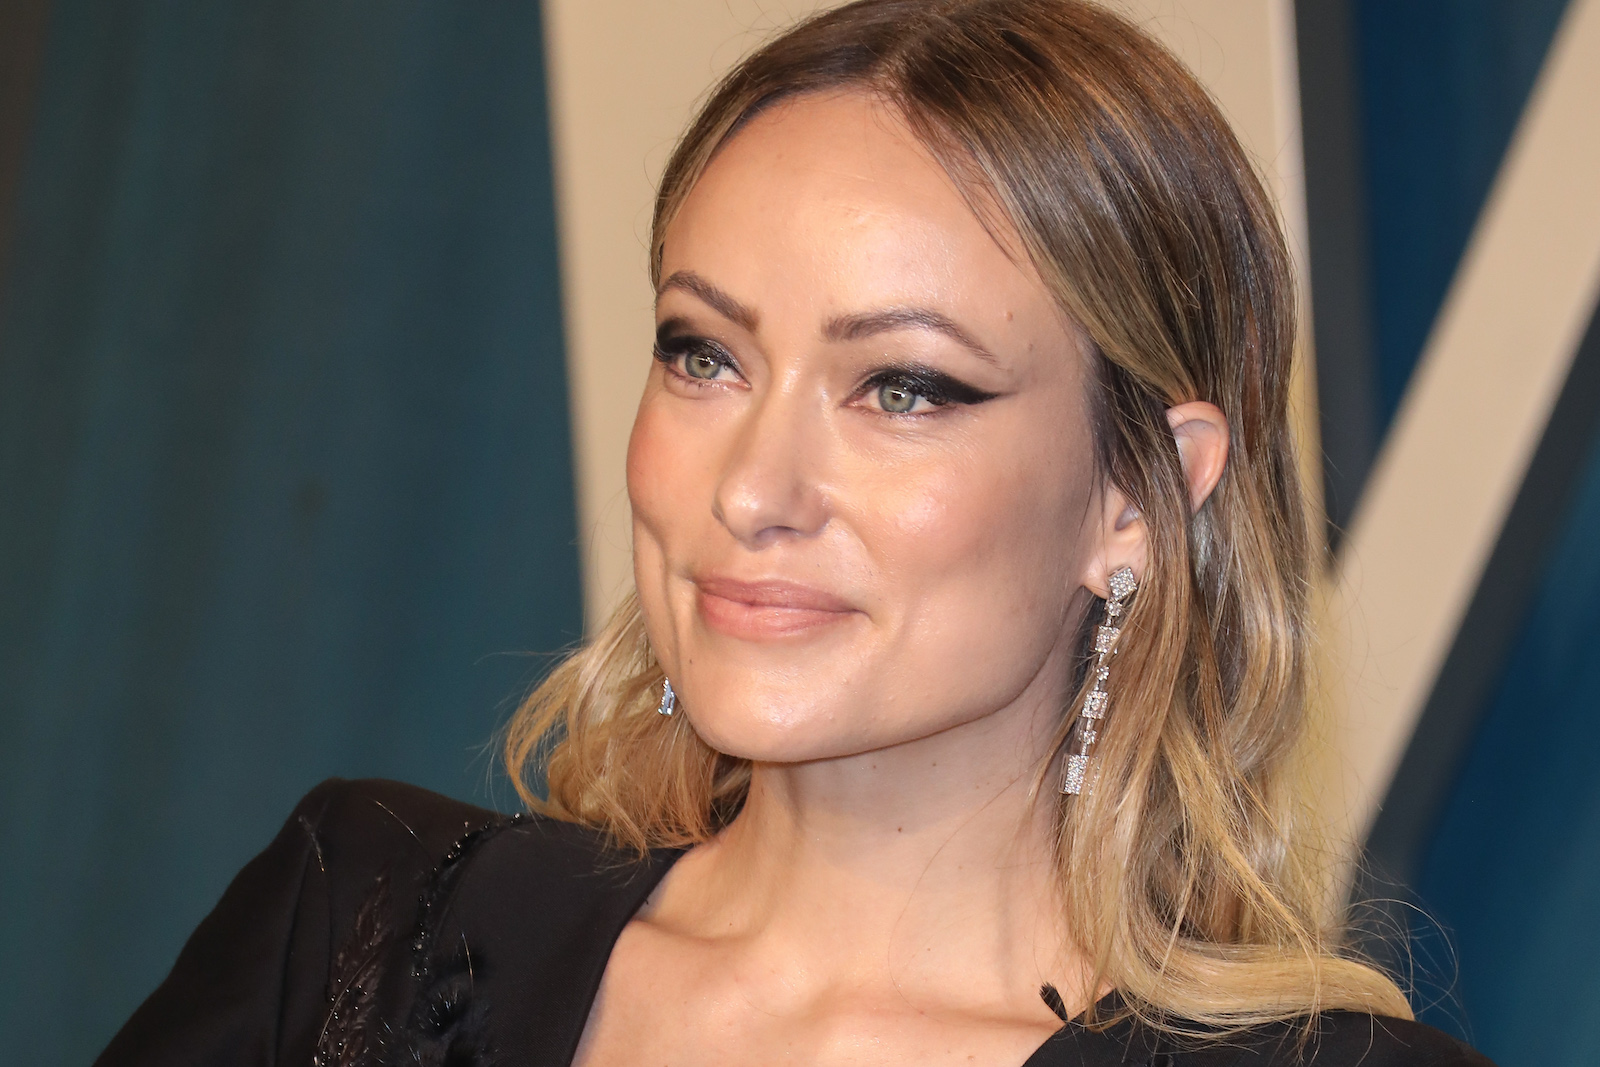 Olivia Wilde's Vogue recent interview is a far cry from where she started in her career in Hollywood